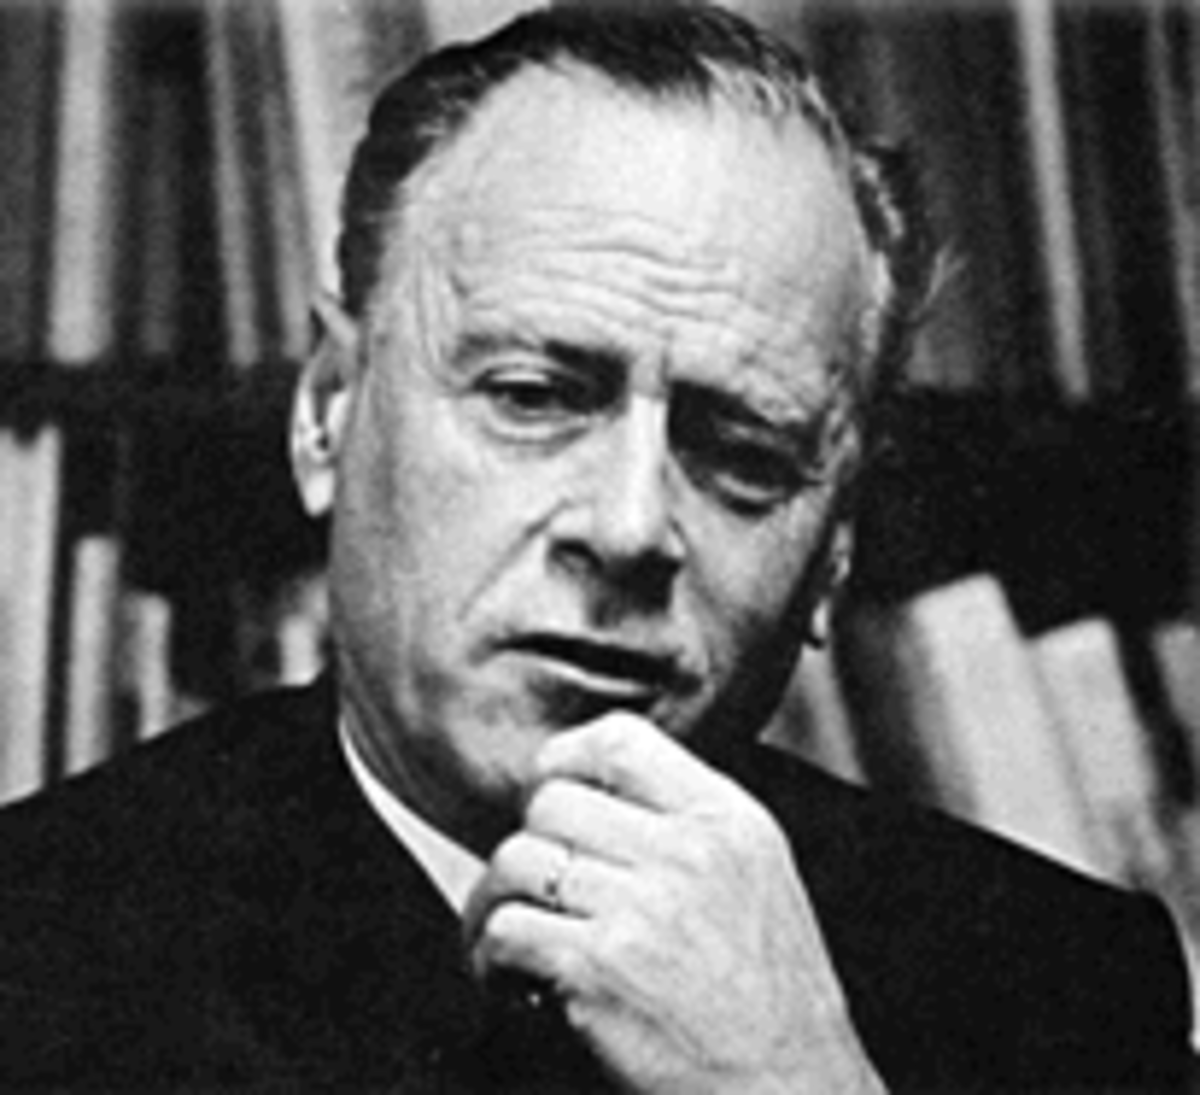 "Marshall McLuhan Has offered frequently brilliant and baffling theories about the impact of media on man. His observations  are riddled with such flambouyancy and undecipherable aphorisms:  ""The electirc light is pure information"", etc."